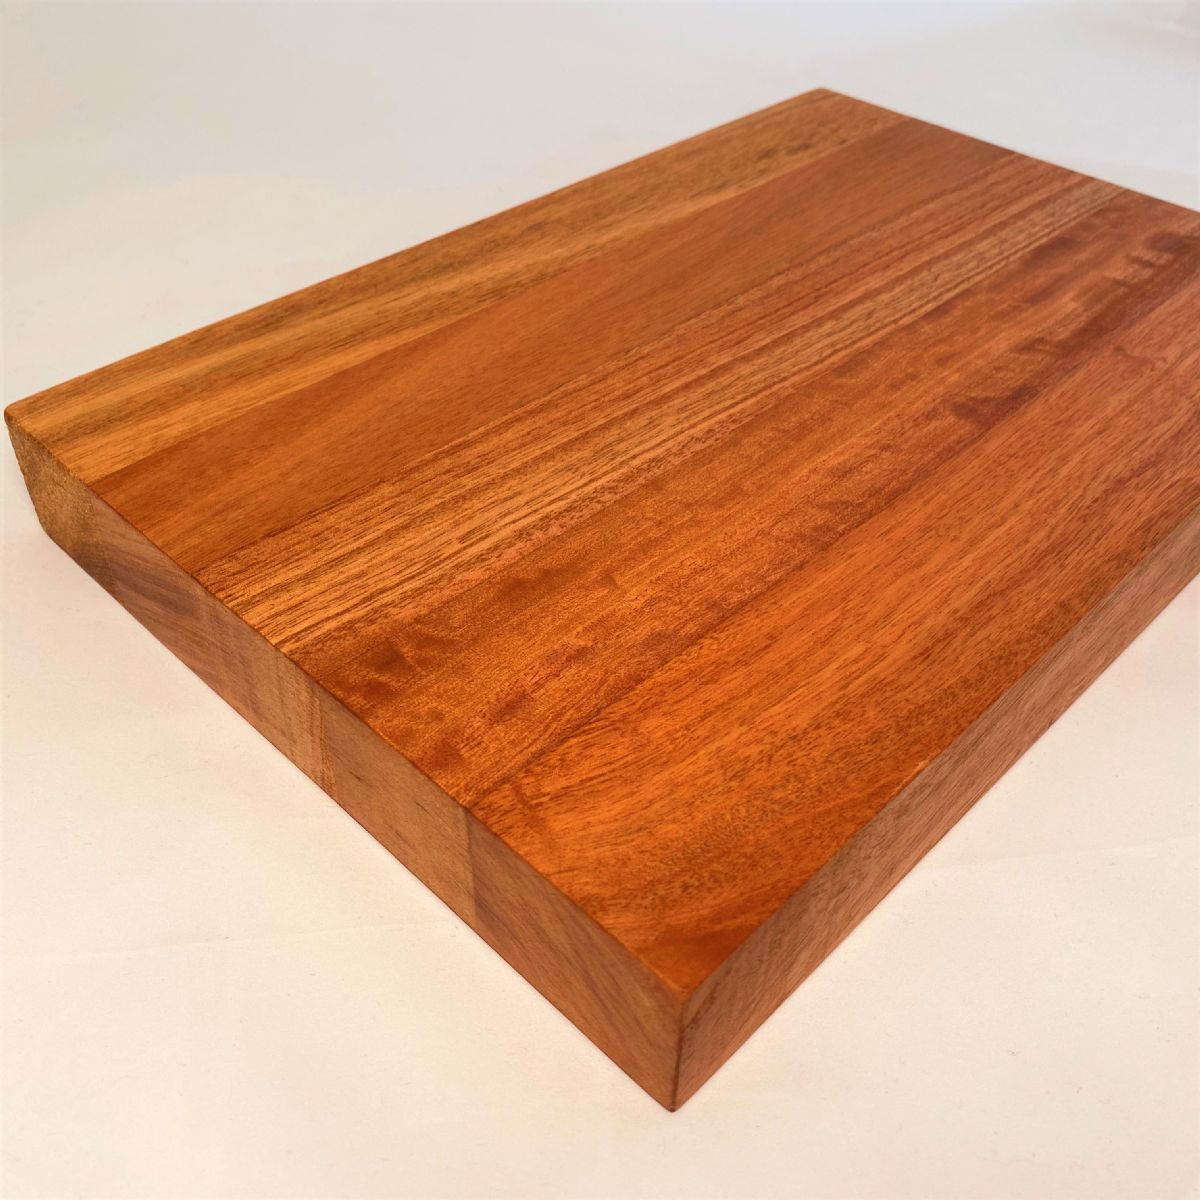 EUCALYPTUS SALIGNA CHOPPING BOARD: Medium